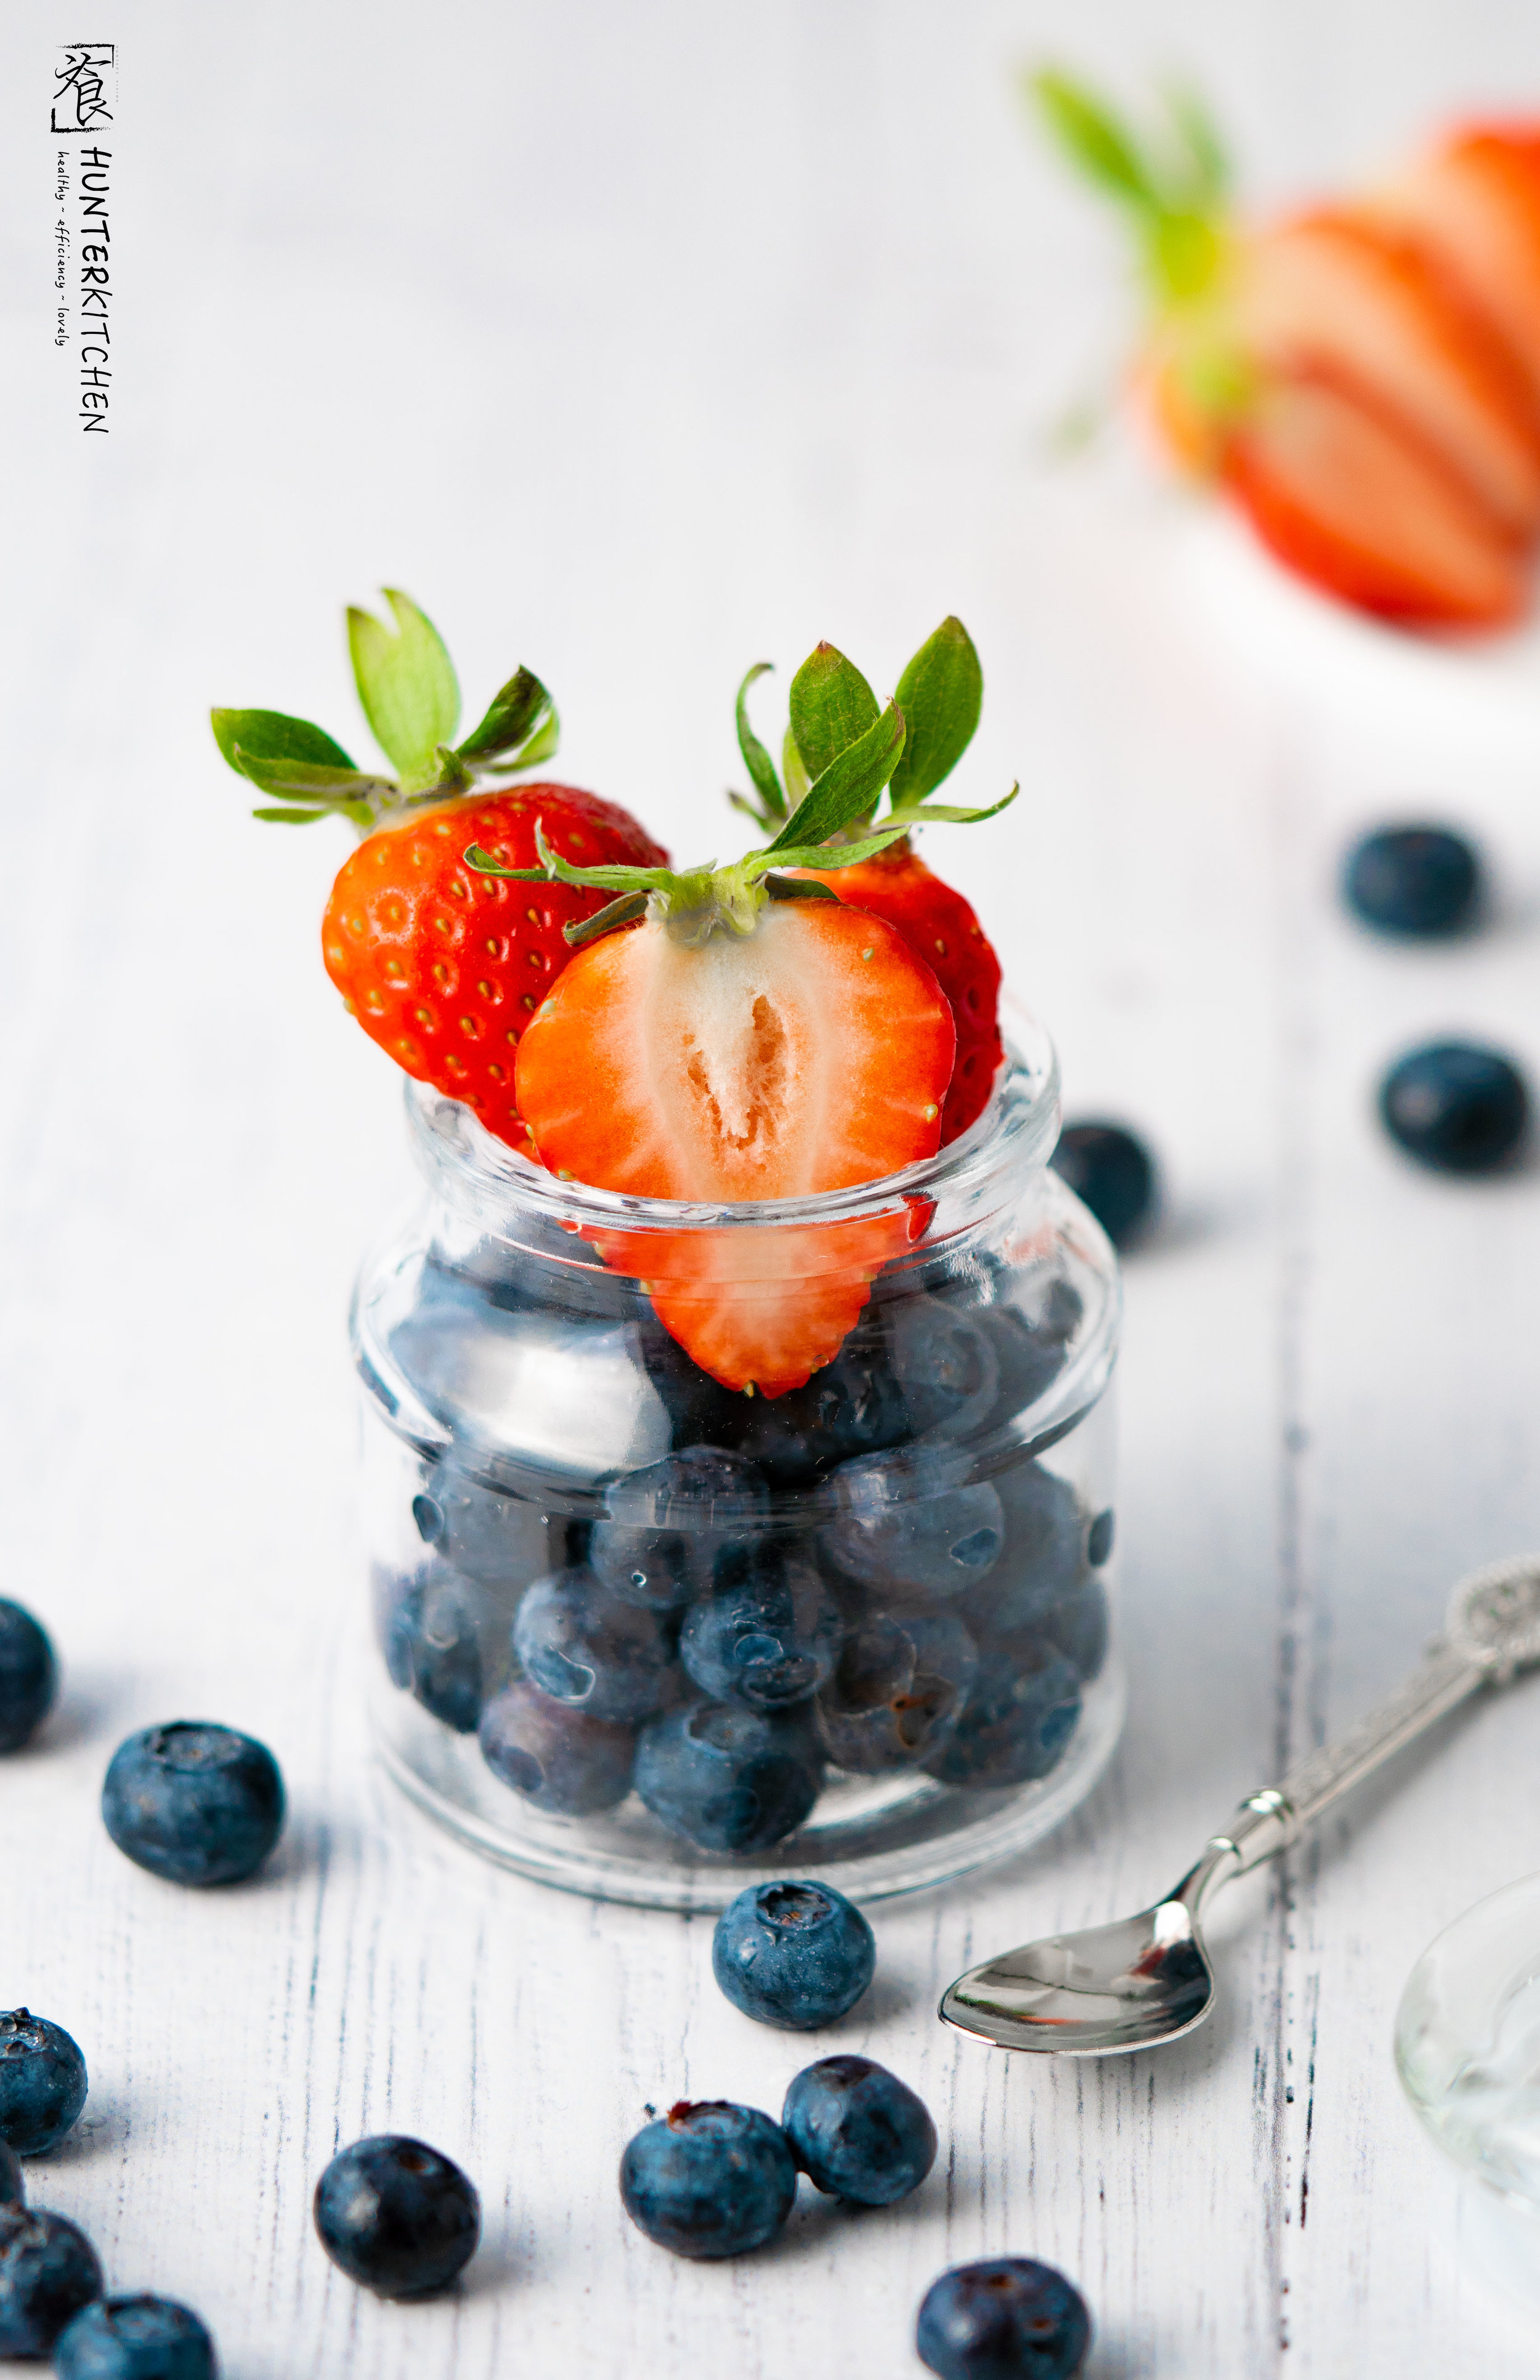 Blueberry-with-Strawberry-1.jpg